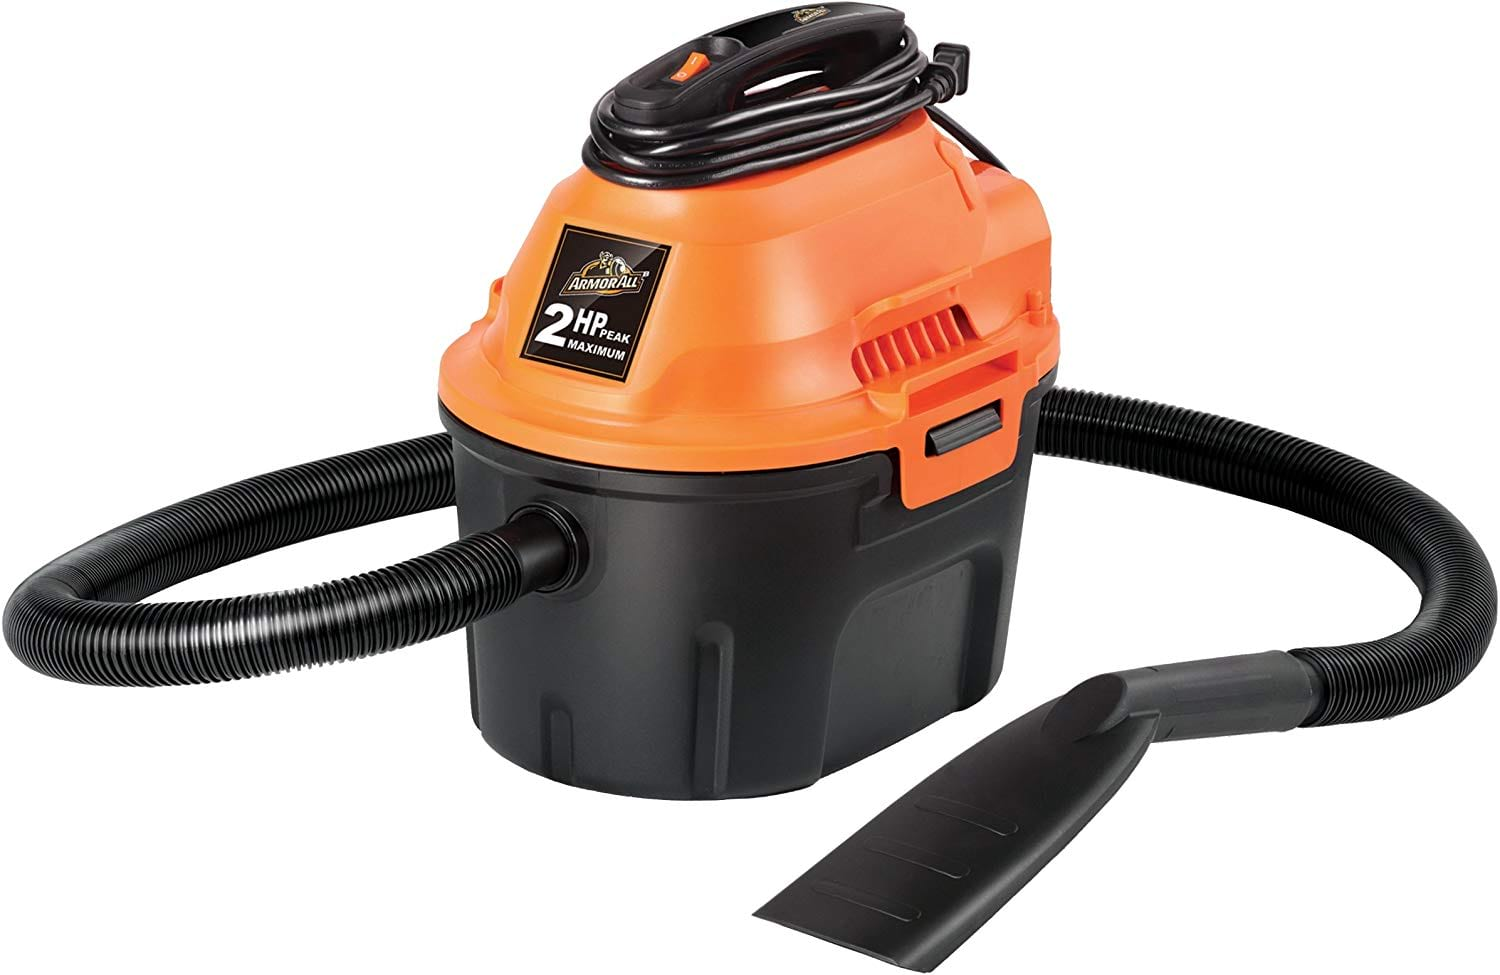 Armor All AA255 Wet and Dry vacuum